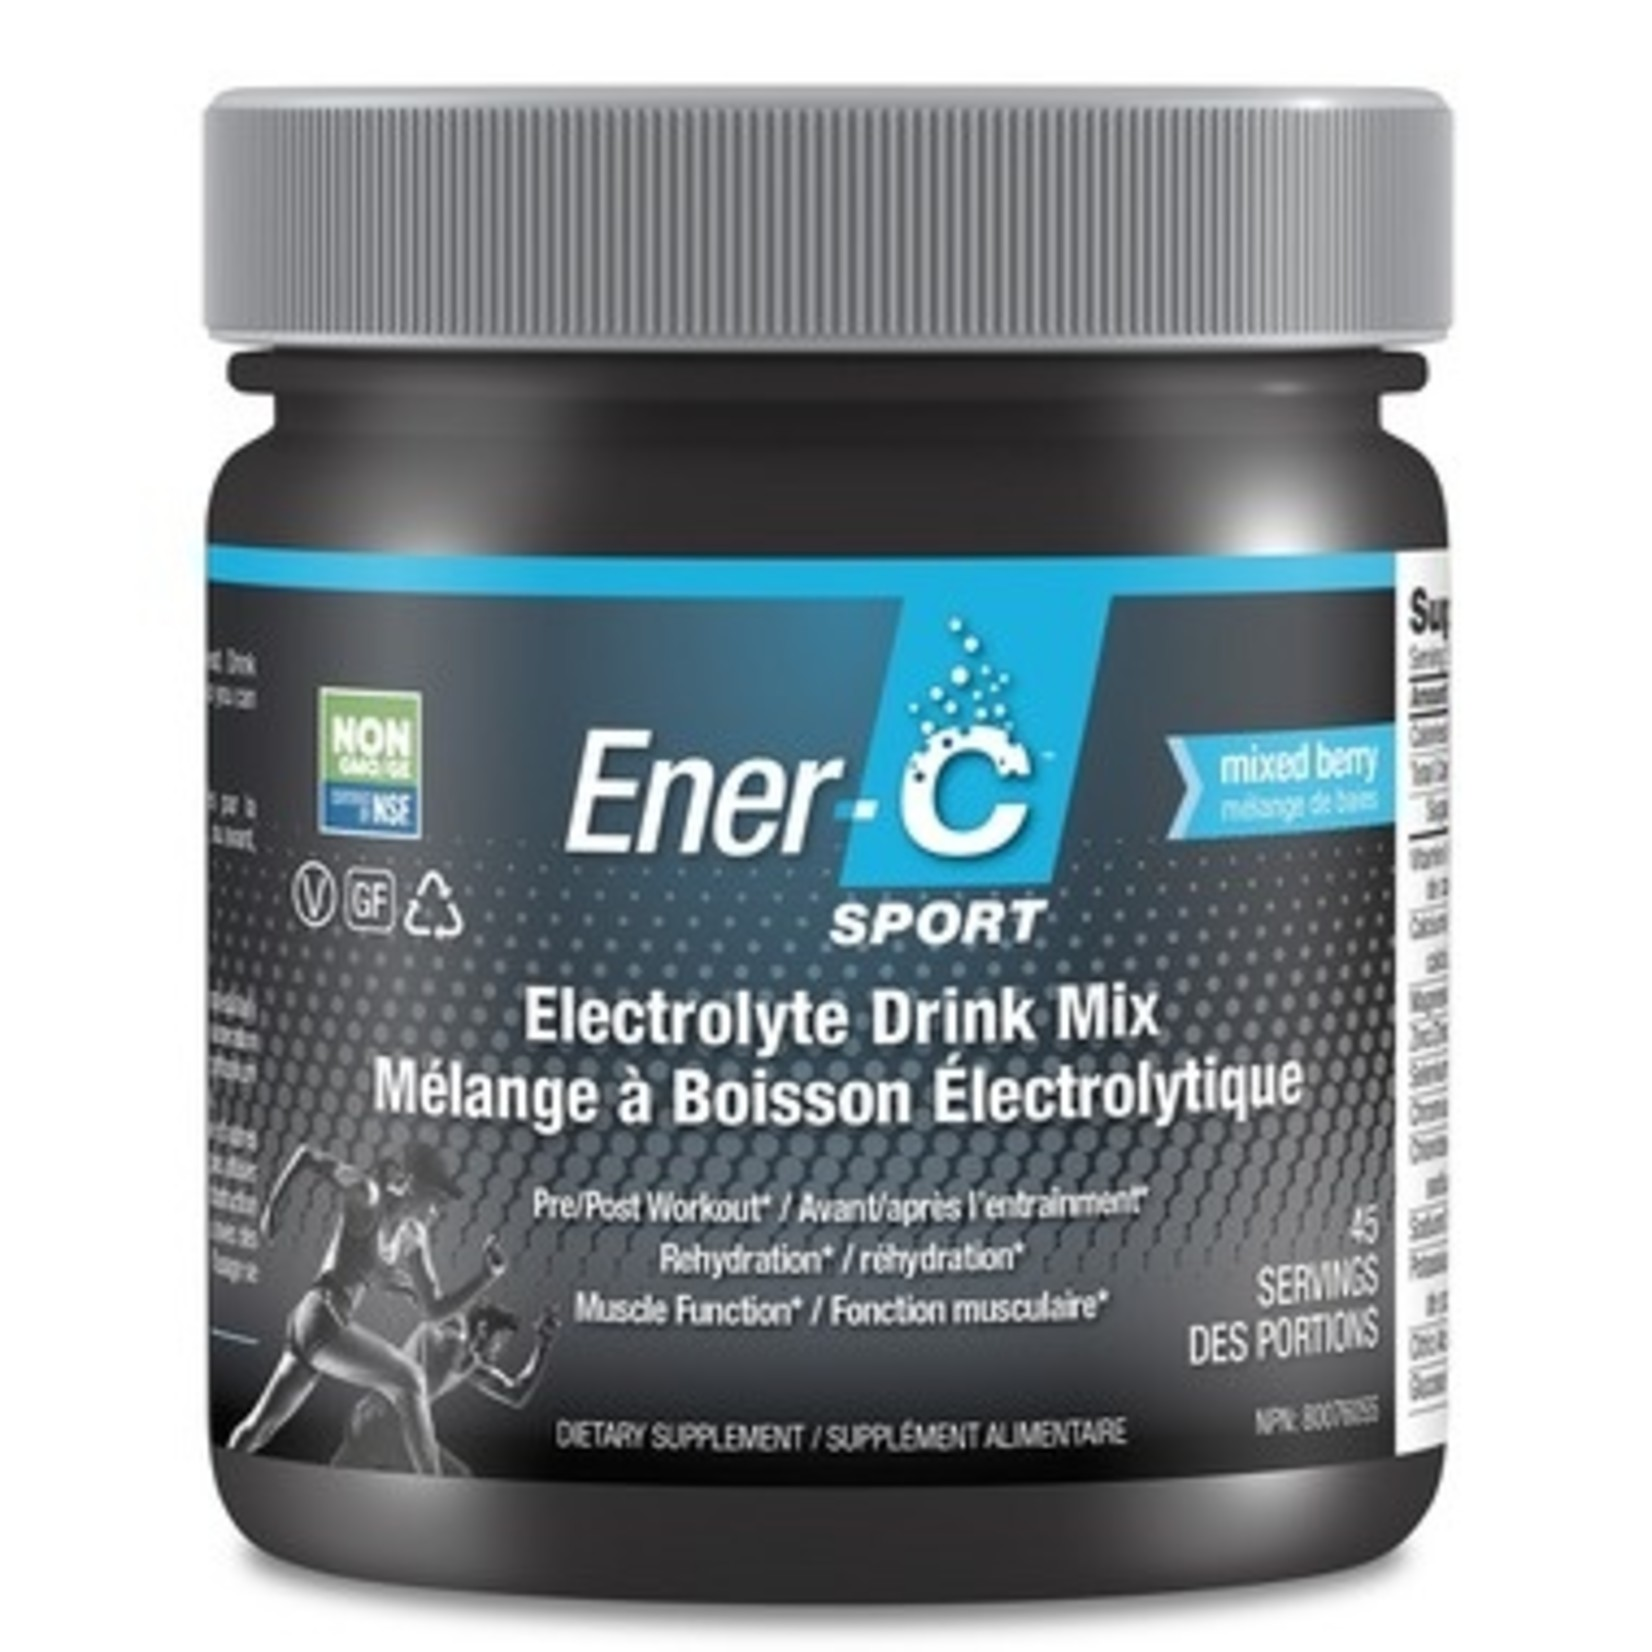 Ener-C Ener-C Electrolyte Drink Mix 154.35g Powder